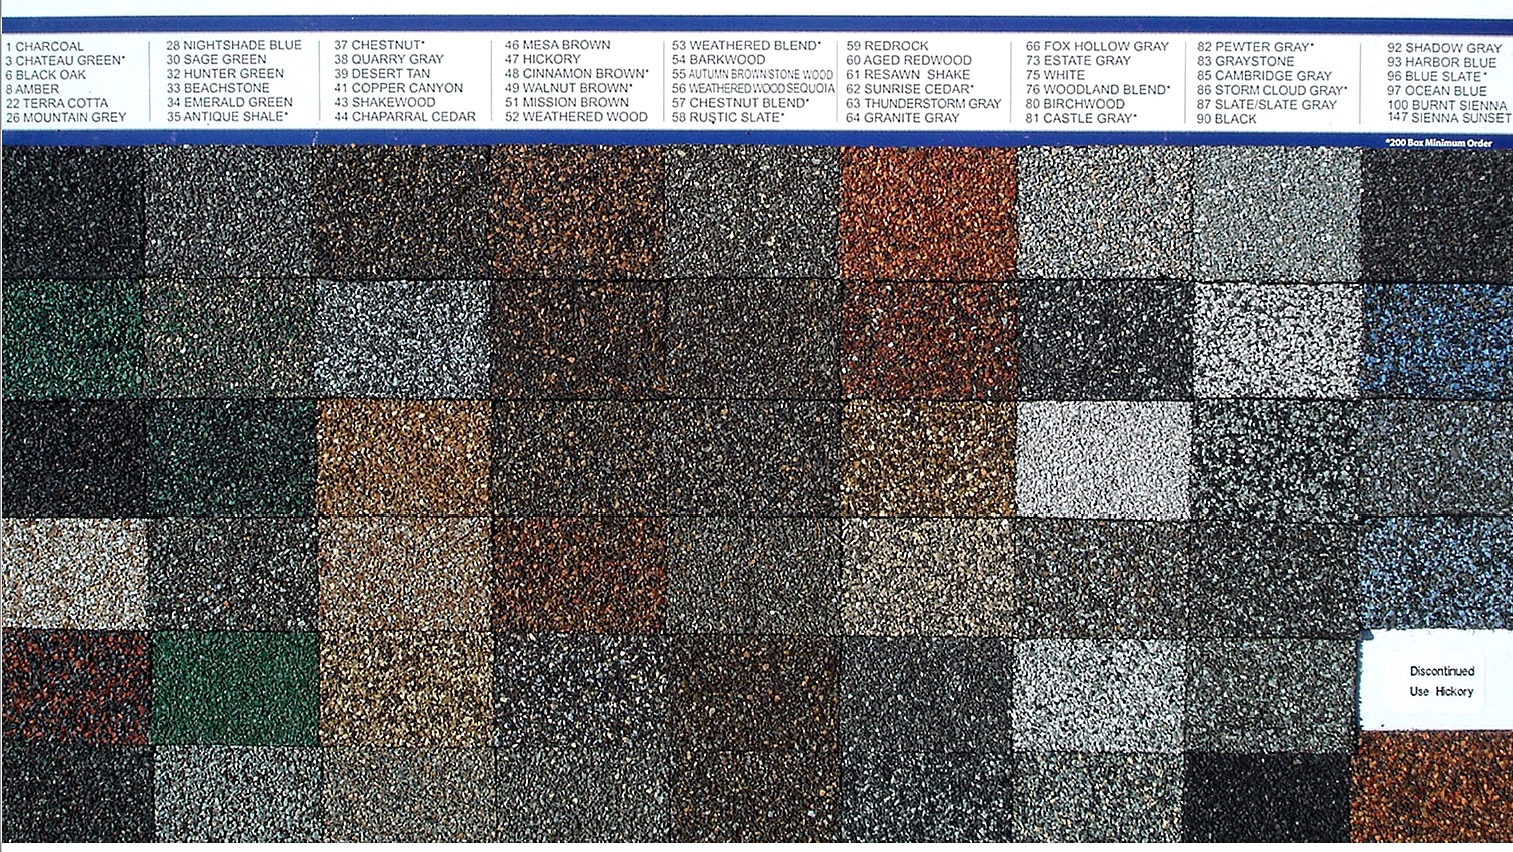 11 Ceramic Coated Roofing Granules 60 Specify Color